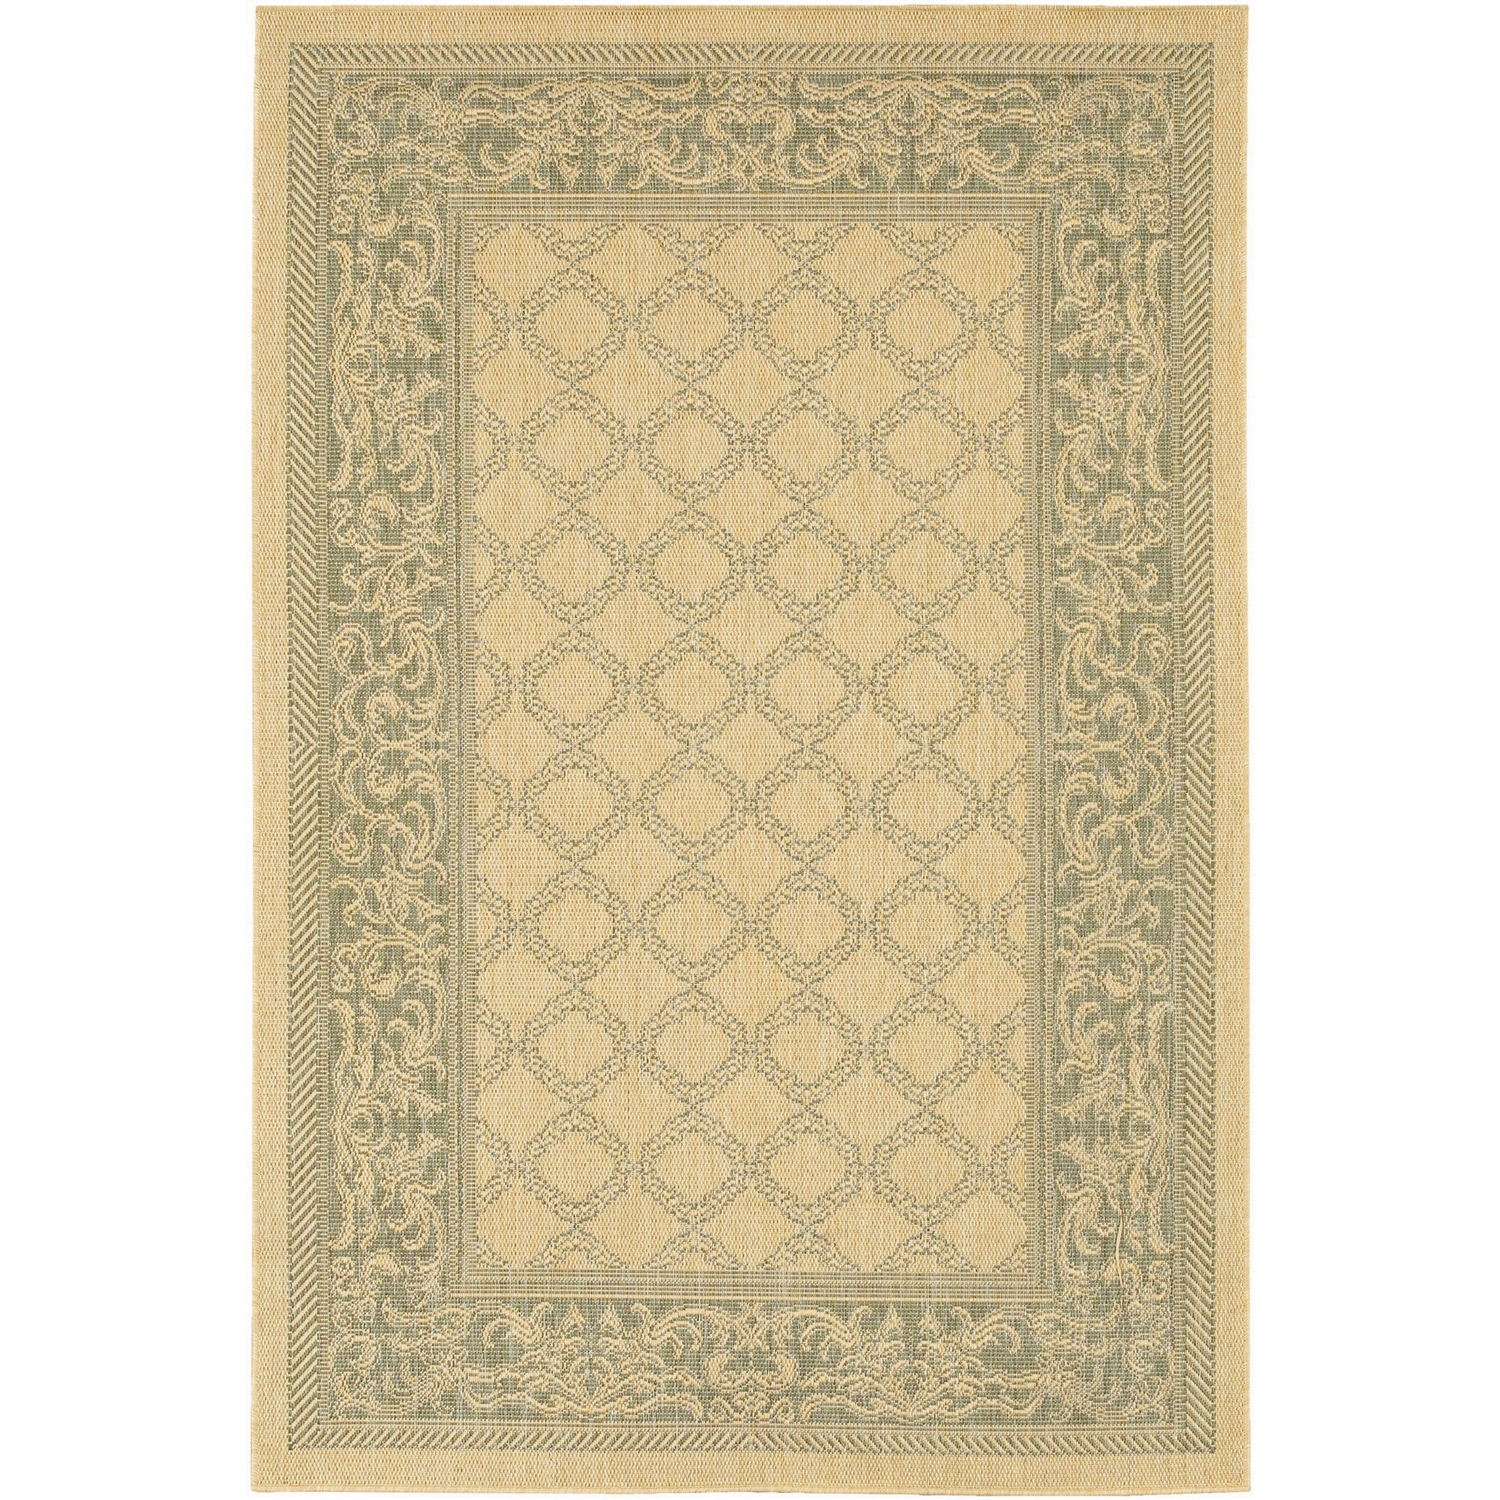 2'3 x 3'7 Indoor Outdoor Rug with Garden Trellis Lattice Pattern, CRGL23723 :  This 2'3 x 3'7 Indoor Outdoor Rug with Garden Trellis Lattice Pattern would be a great addition to your home. It is made of synthetic materials and is made in Belgium. Color: Natural / Green; Construction: Machine Made; Technique: Machine Woven; Primary Pattern: Geometric; Oriental; Primary Color: Natural; Border Material: Synthetic; Border Color: Natural.  Reversible: No; Rug Pad Needed: Yes; Water Resistant: Yes; Mildew Resistant: Yes; Eco-Friendly: No; Outdoor Use: Yes; Country of Manufacture: Belgium; Product Warranty: 1 year limited warranty.